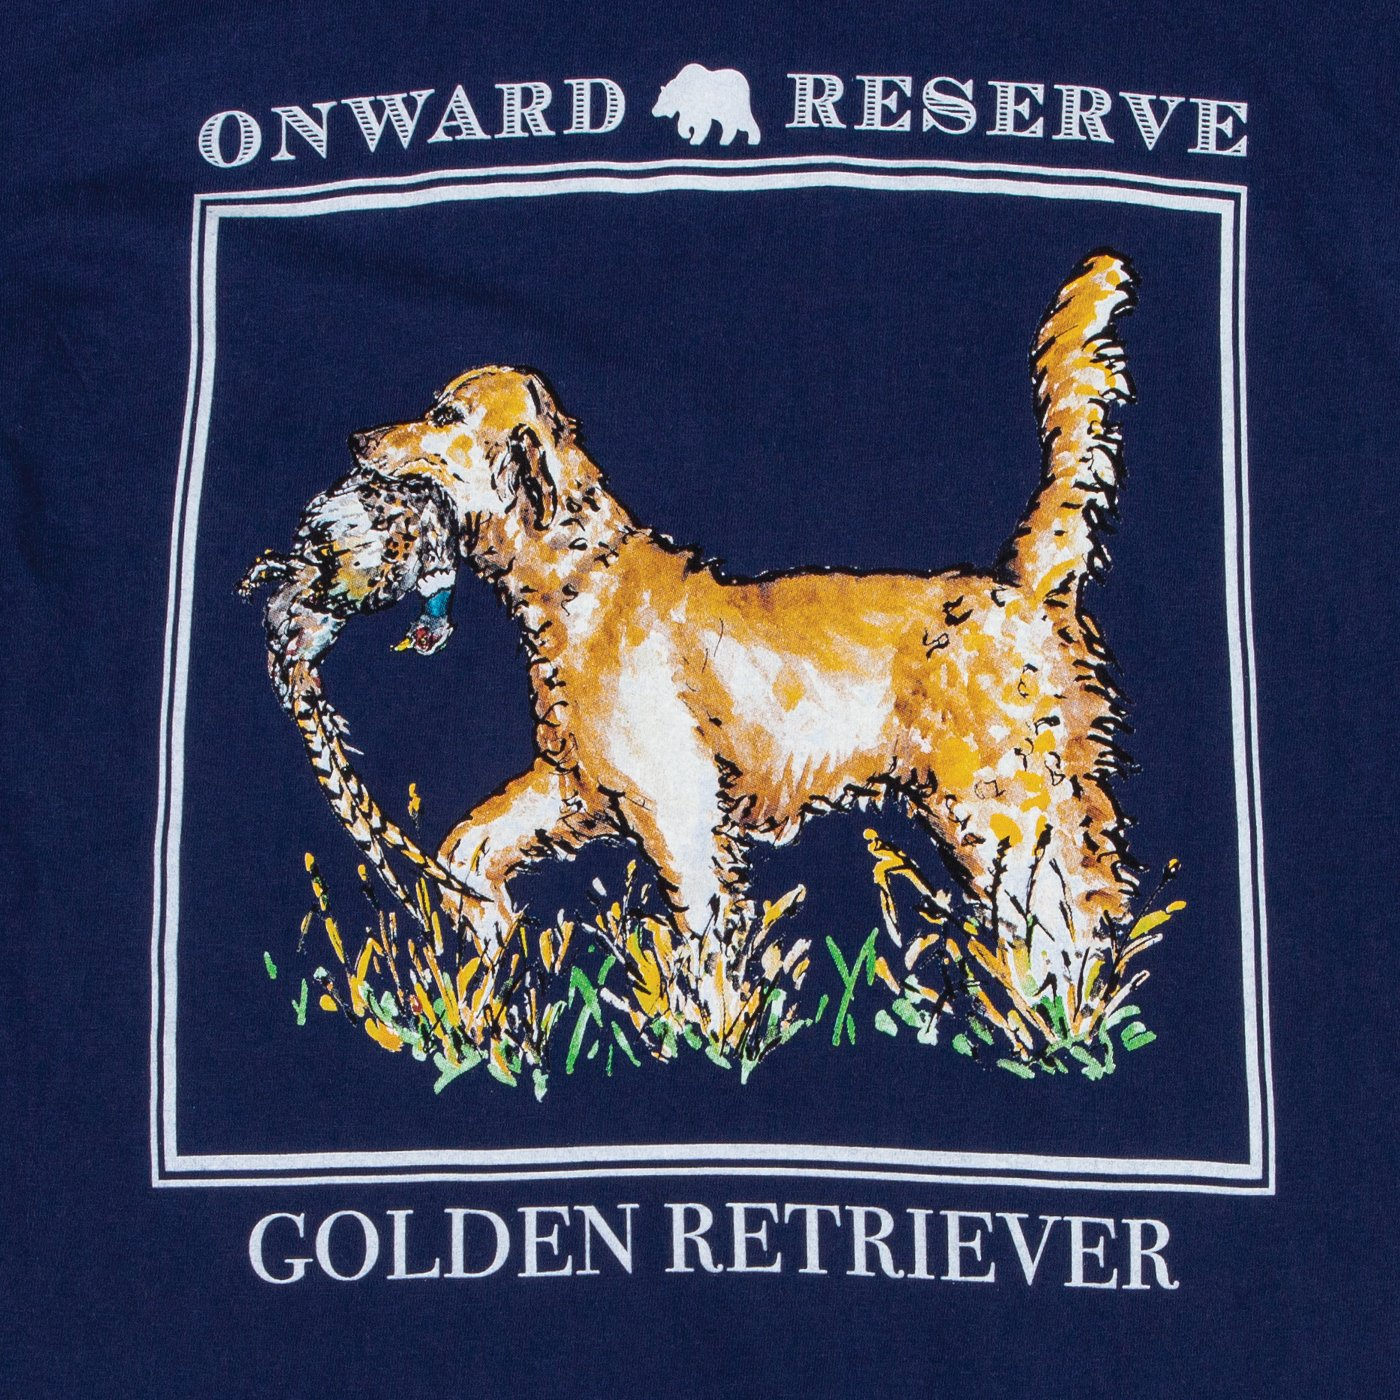 OR-Jamie-Tee-SS-Golden-Retriever-Navy-Detail.jpg